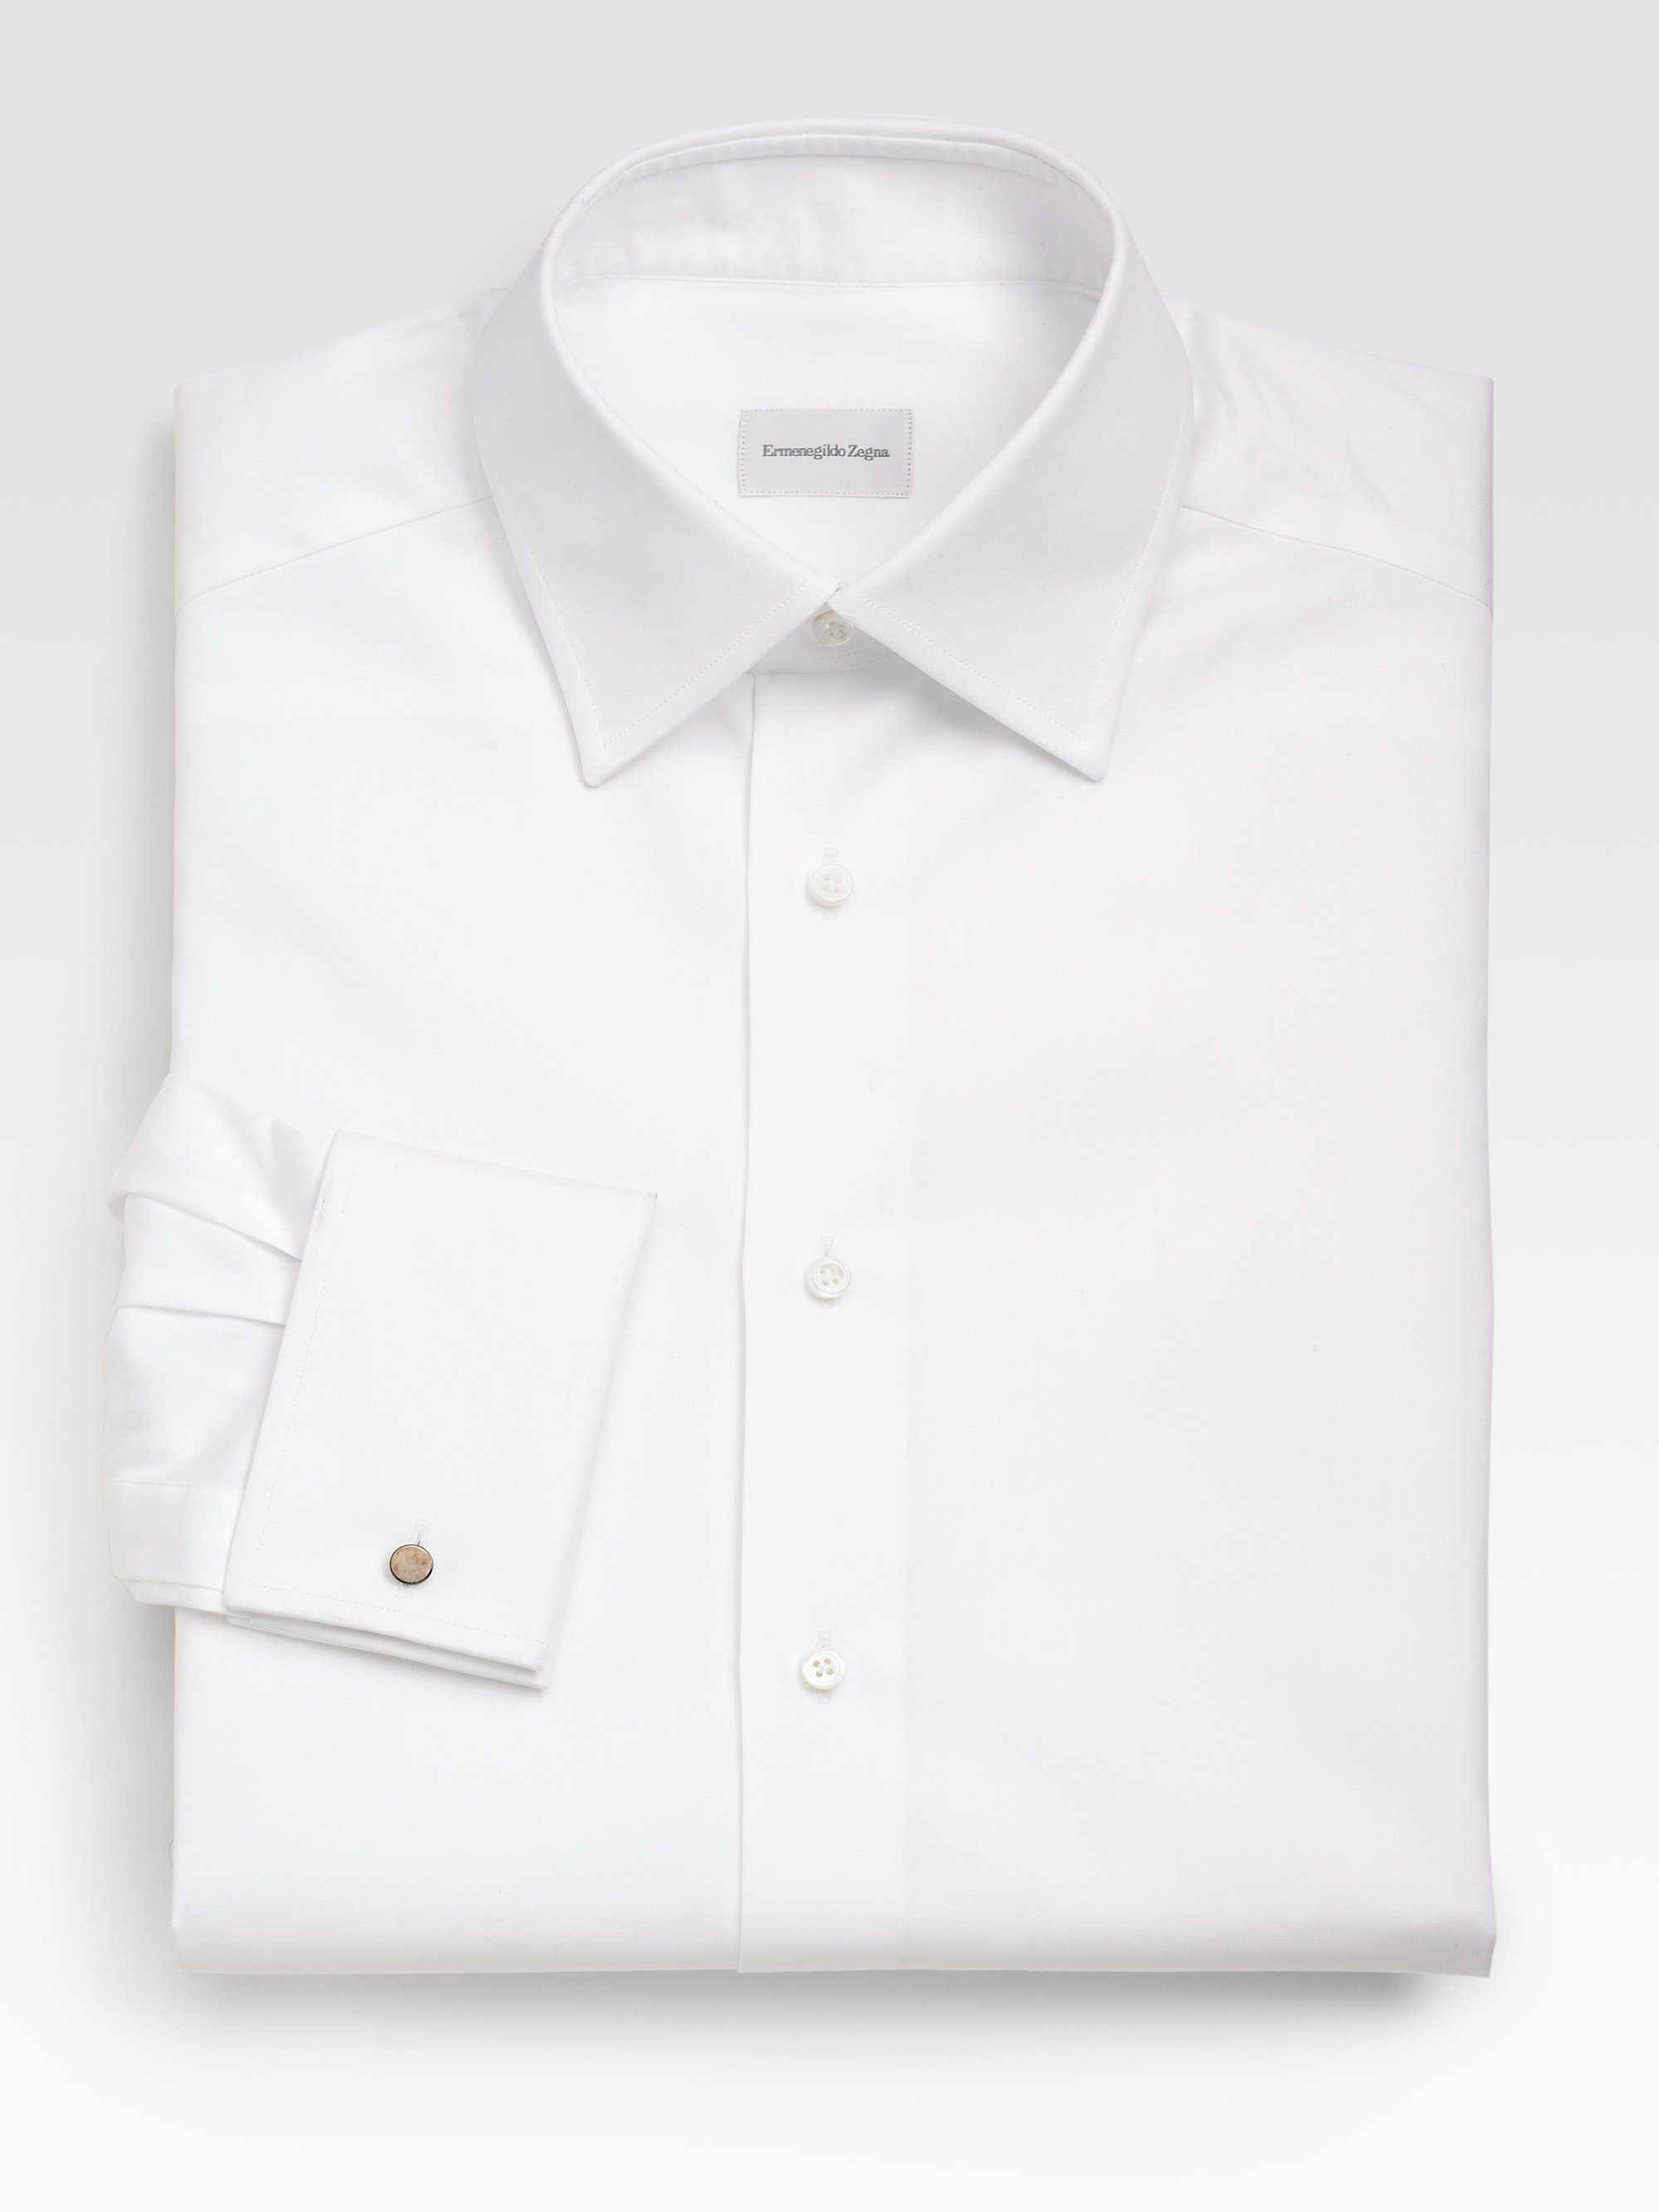 Lyst Ermenegildo Zegna French Cuff Dress Shirt In White